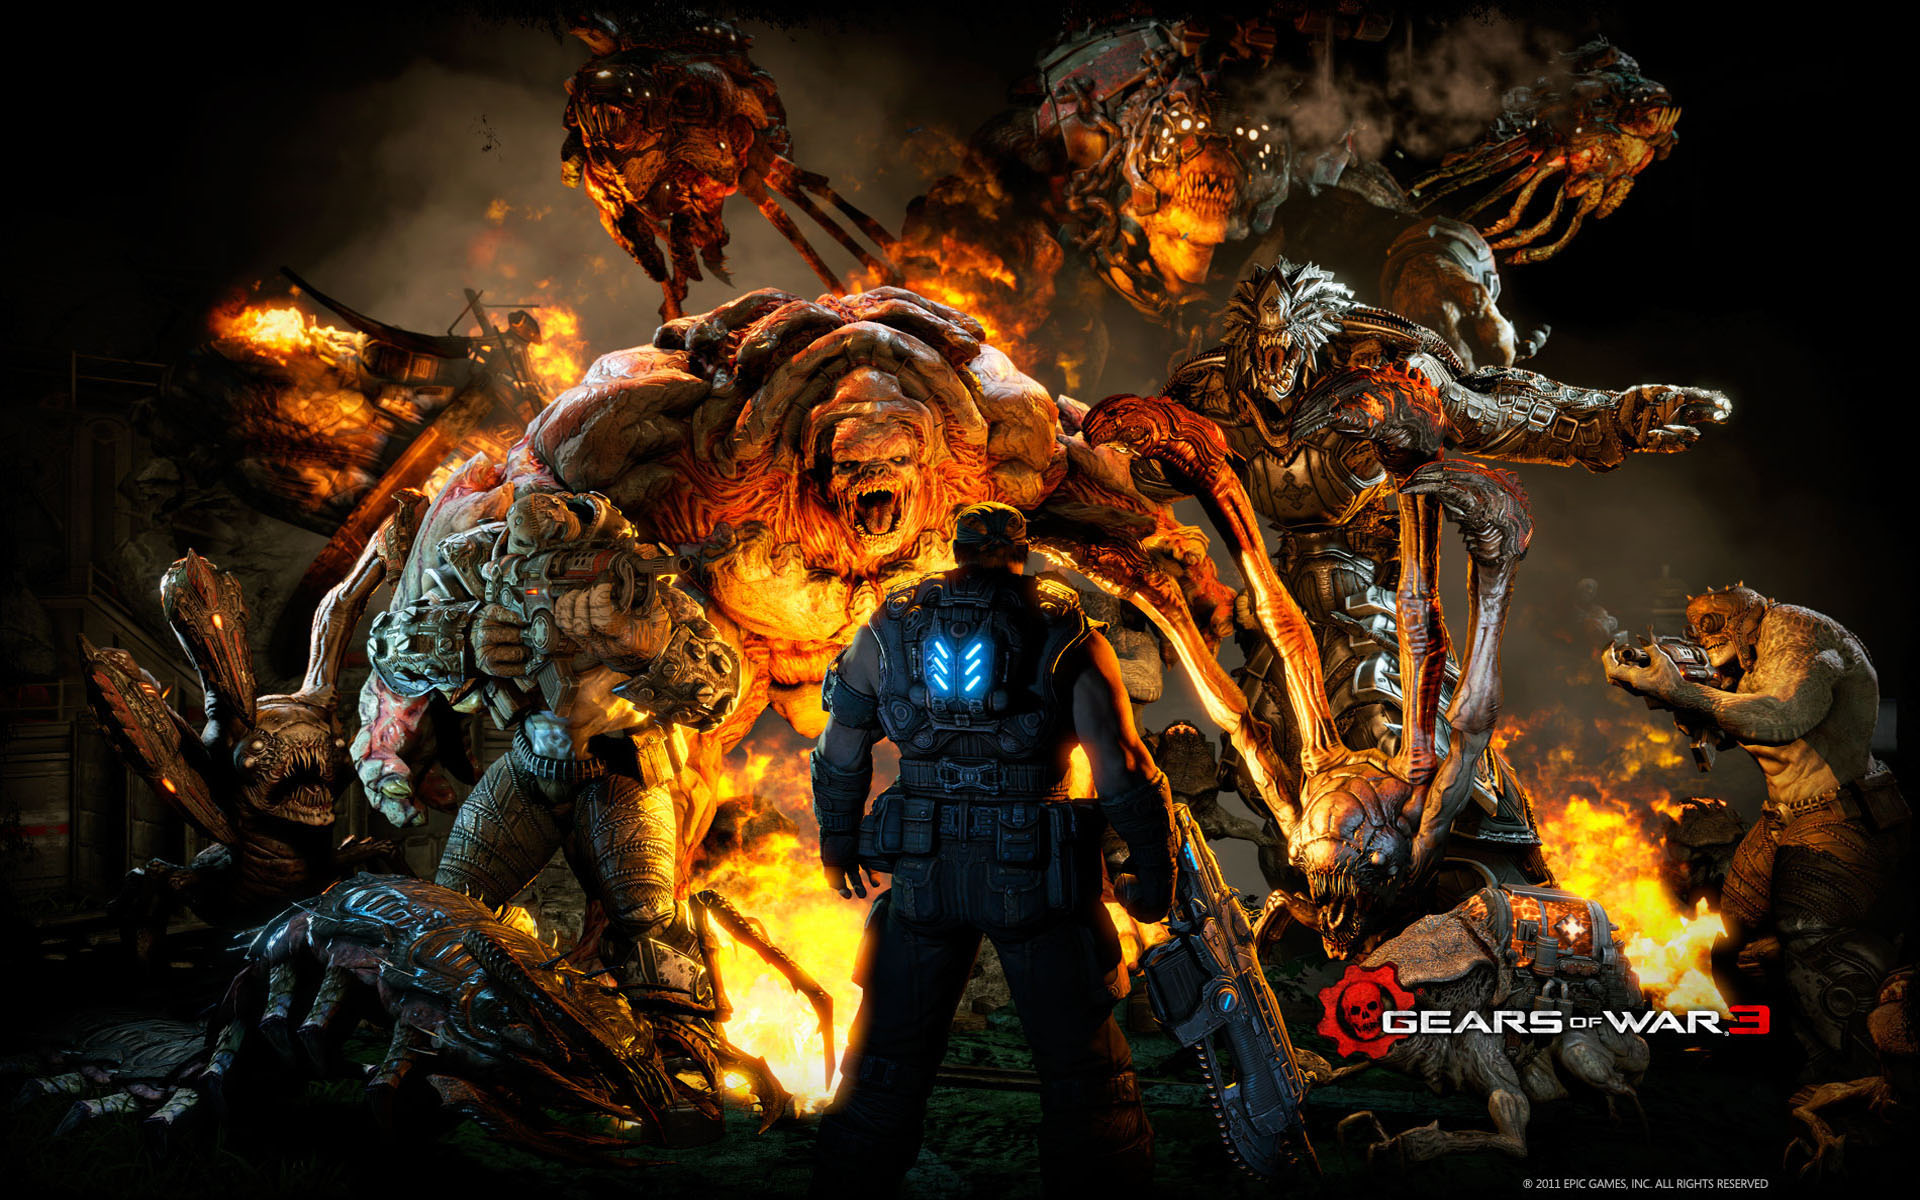 gears of war 3 wallpapers 1920x1200 | sweet images